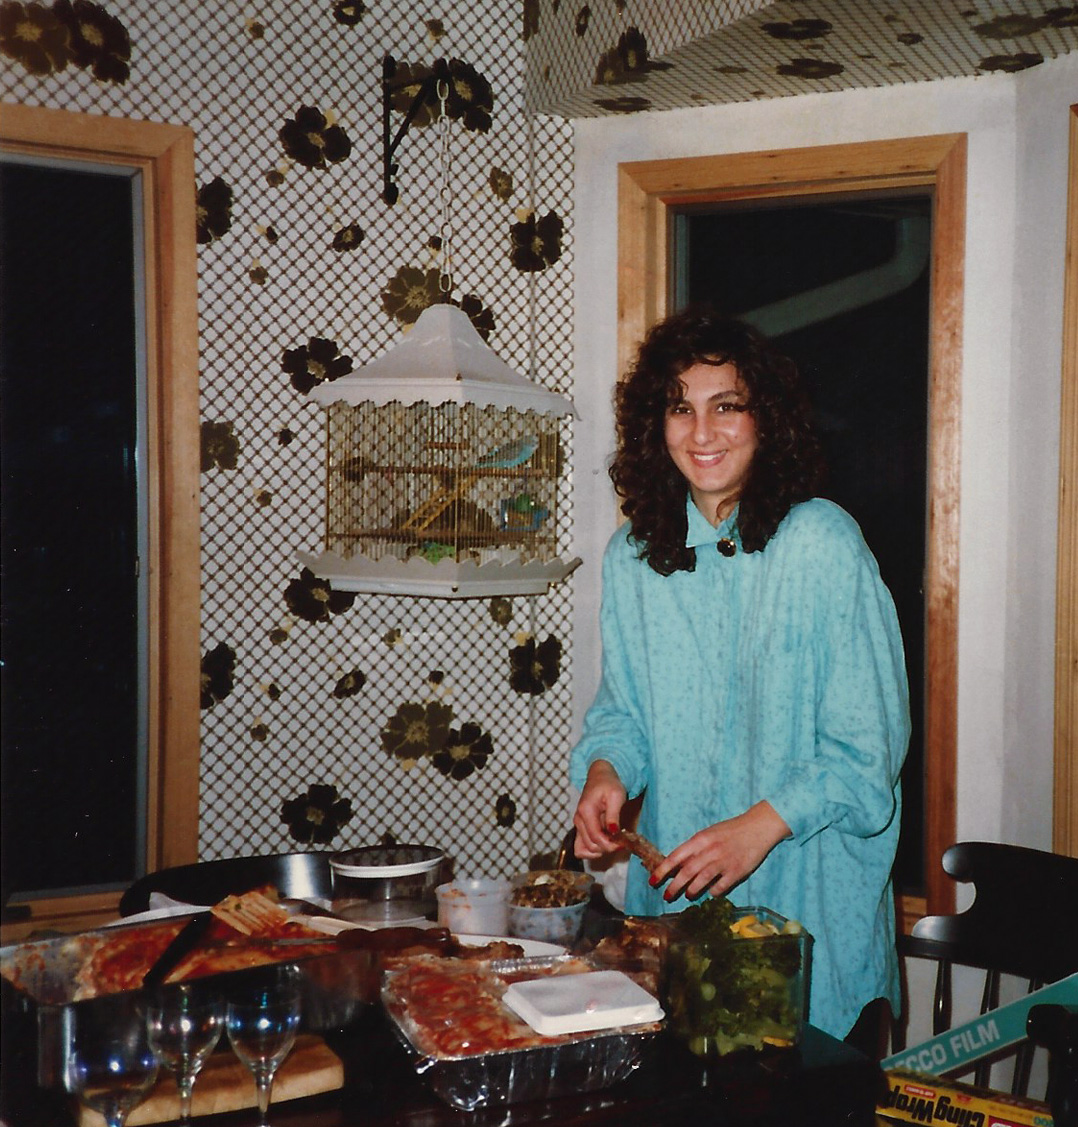 In my parent's kitchen on Long Island with sumo sized vats of food. Yes, I say from WAY back. That was my brother's bird named Qubiert.